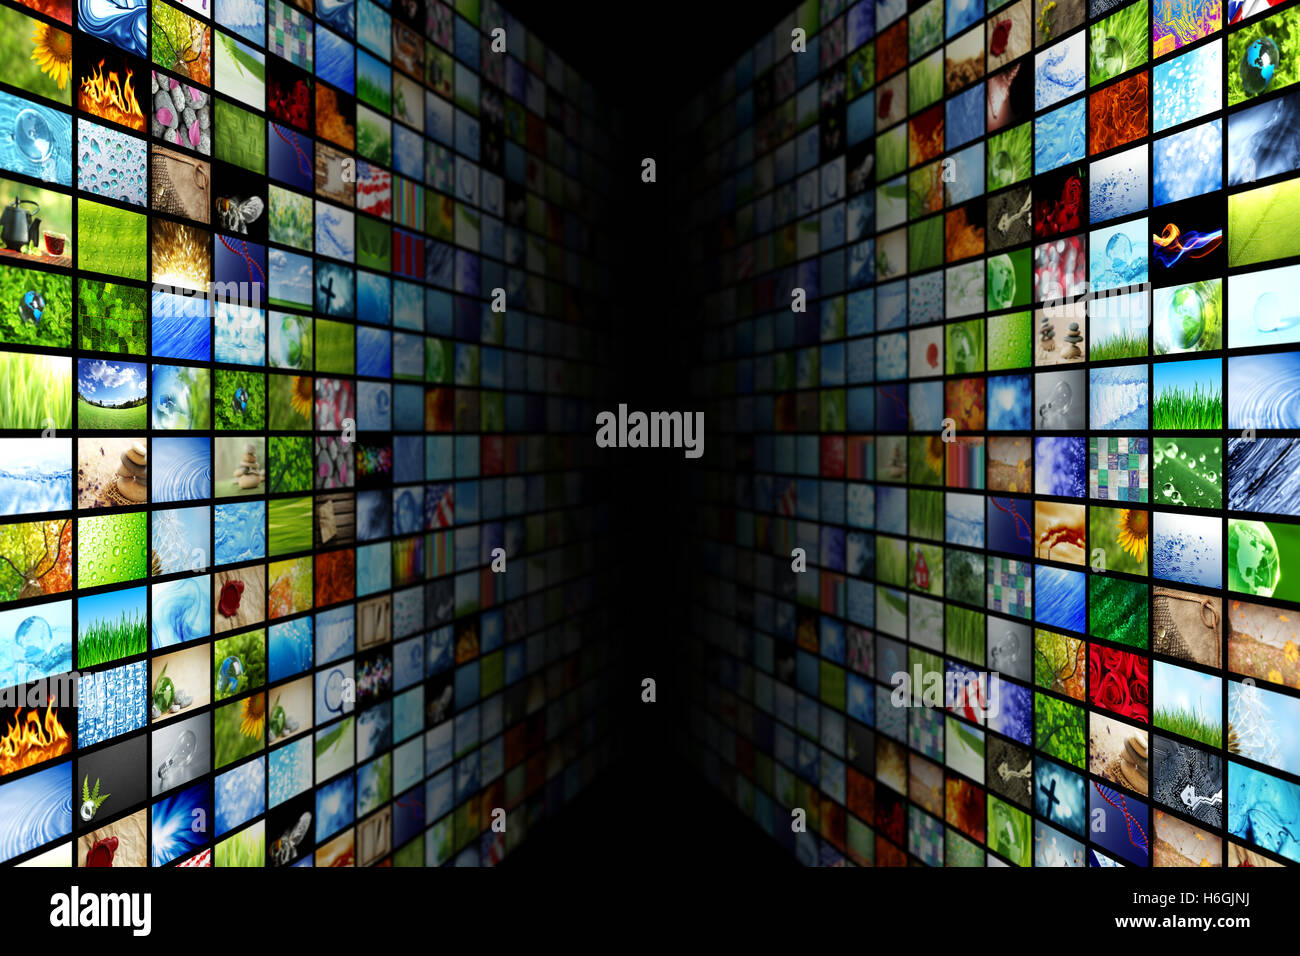 Giant multimedia video and image walls - Stock Image